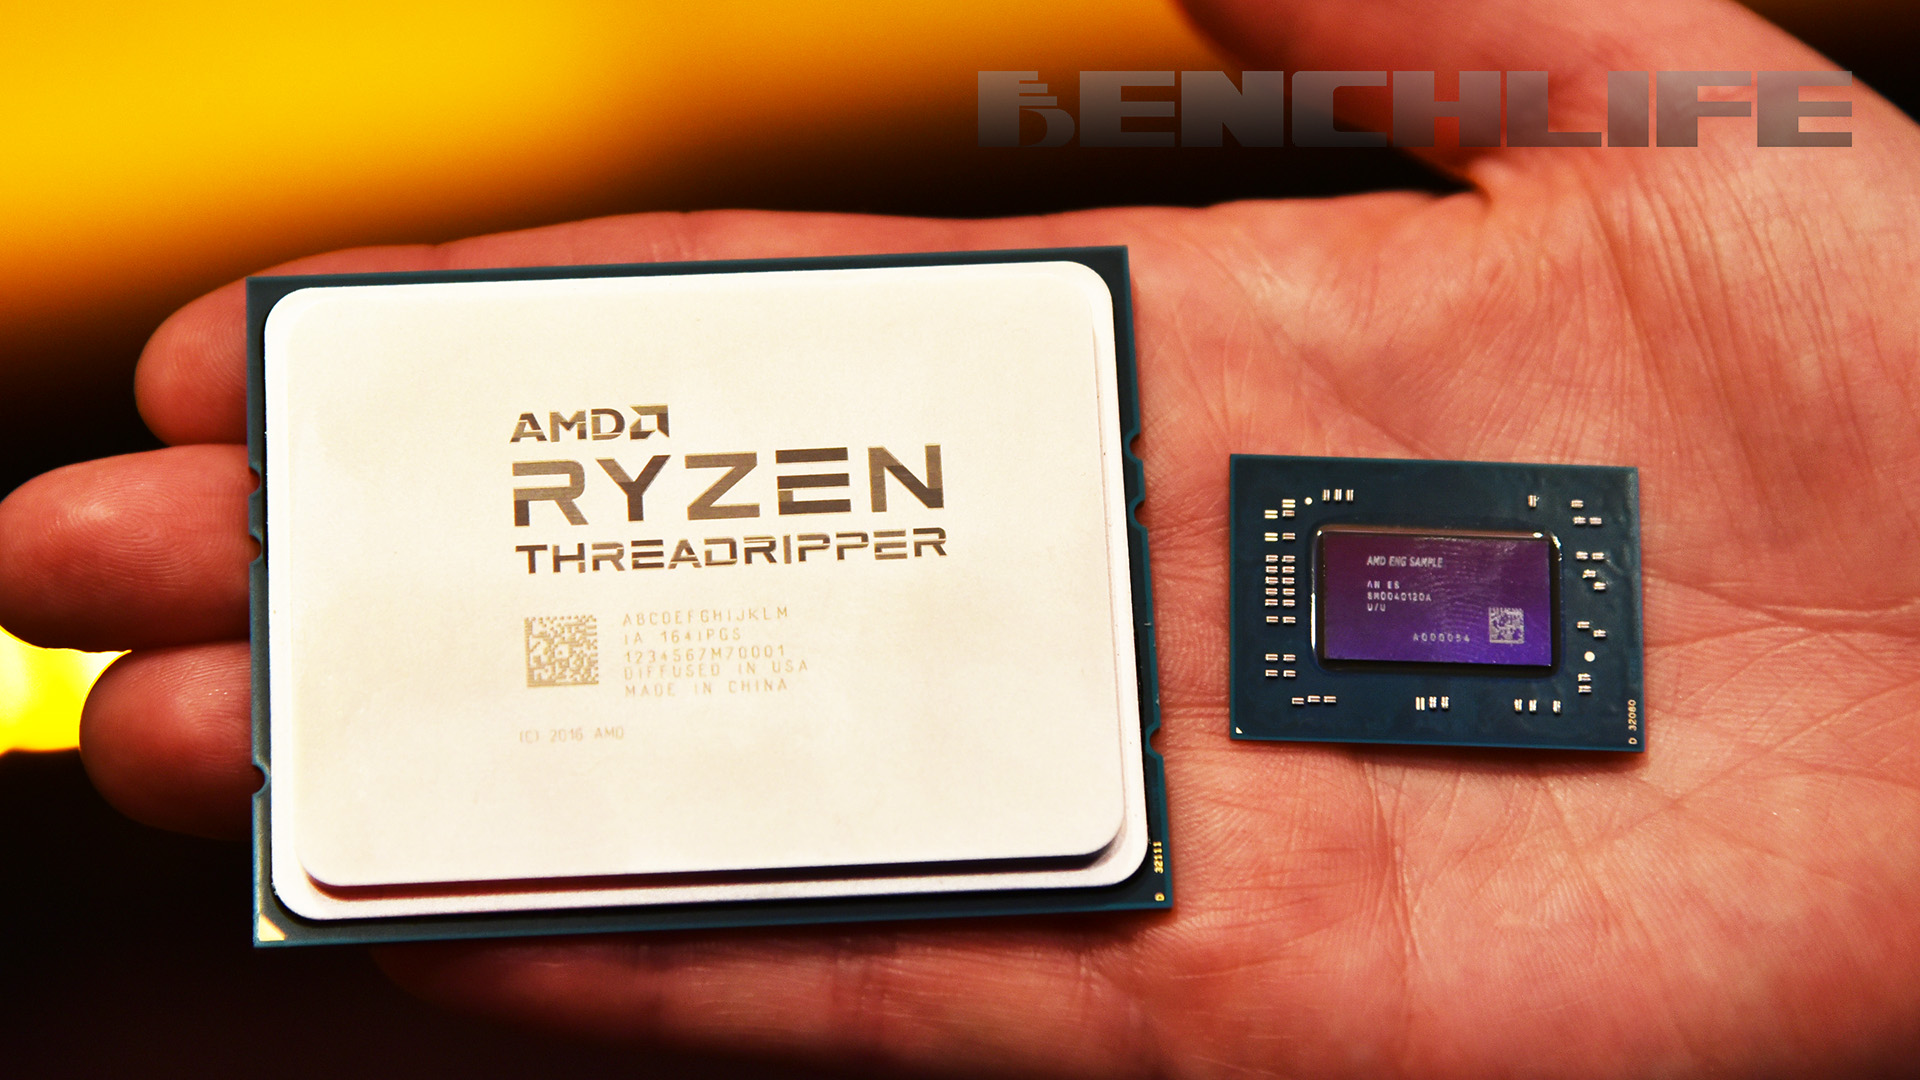 AMD Ryzen Threadripper 和 EPYC 並非同根生,開核念頭無望